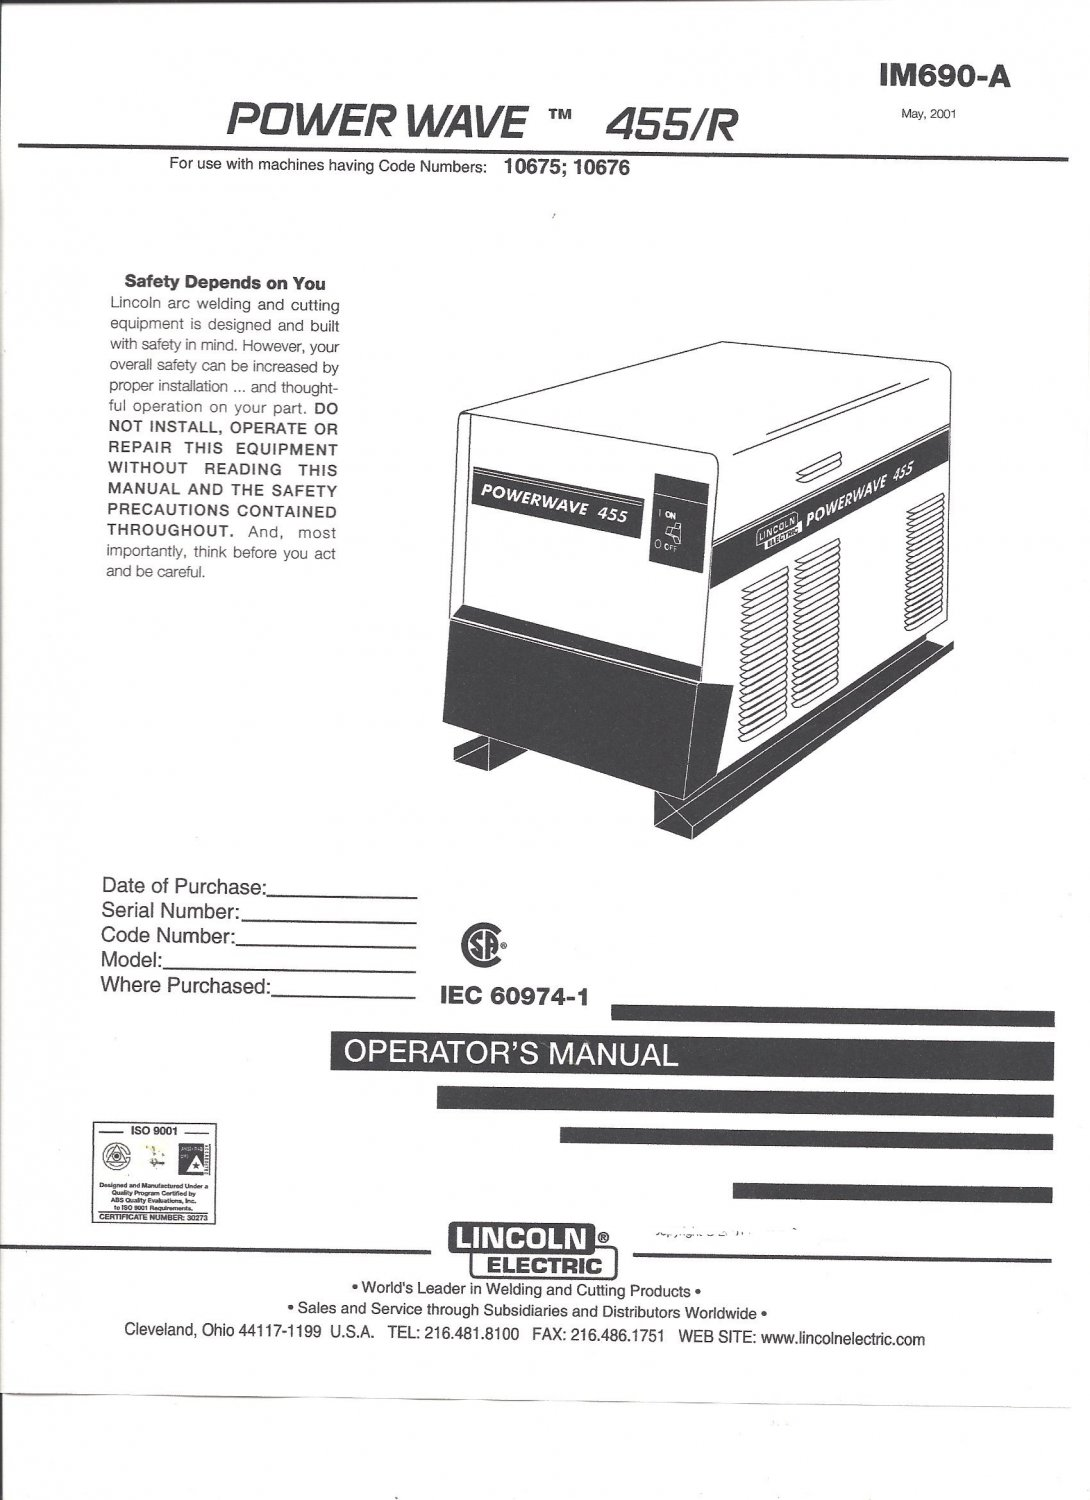 Lincoln Electric POWER WAVE 455/R Welder Operator's Manual ( Copy)